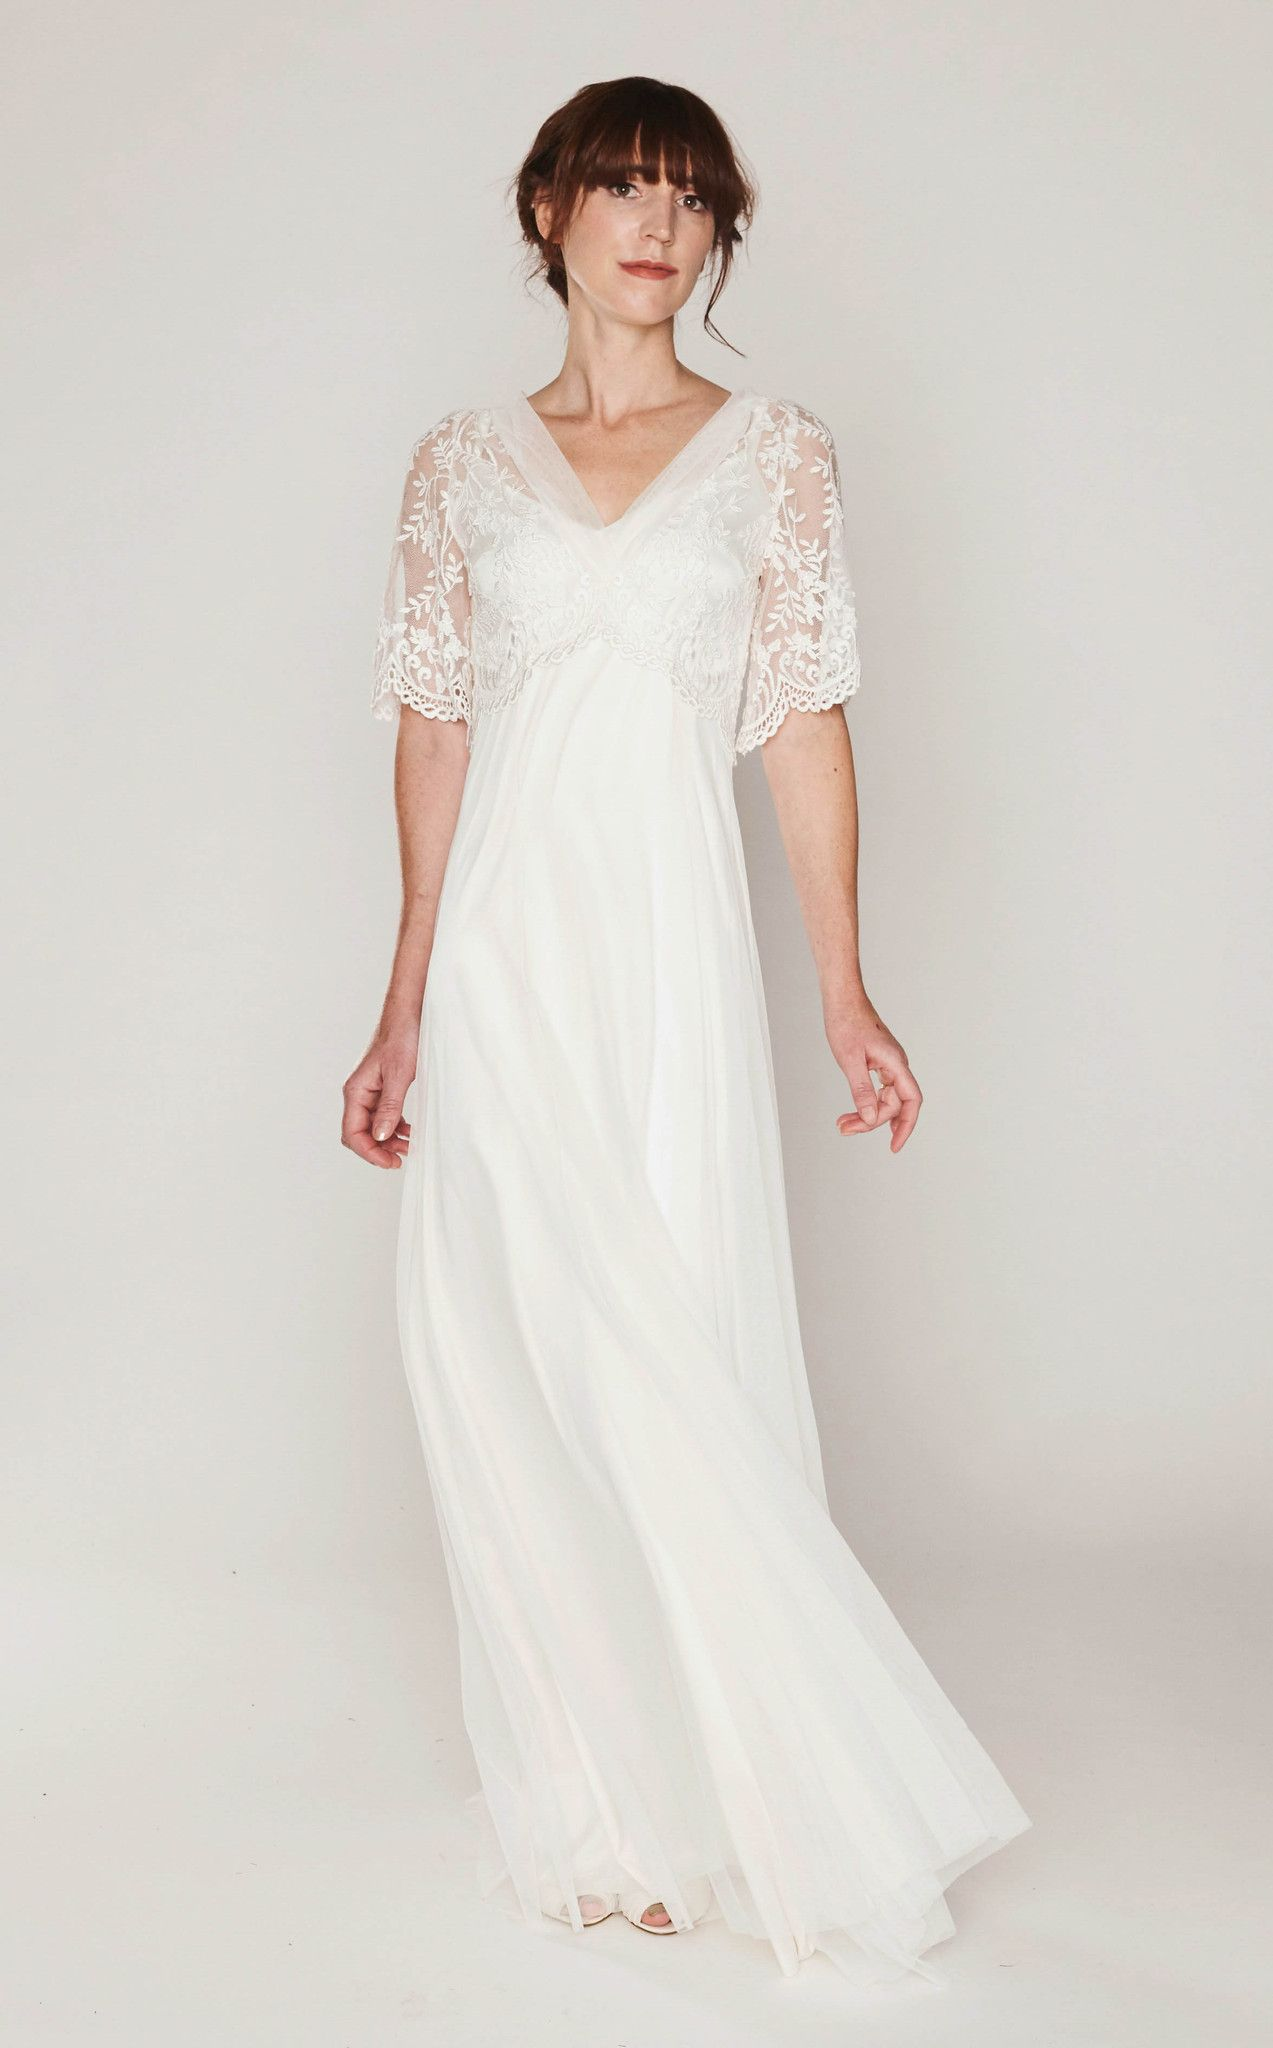 Iris modest wedding dress | Modest Wedding Dresses | Pinterest ...